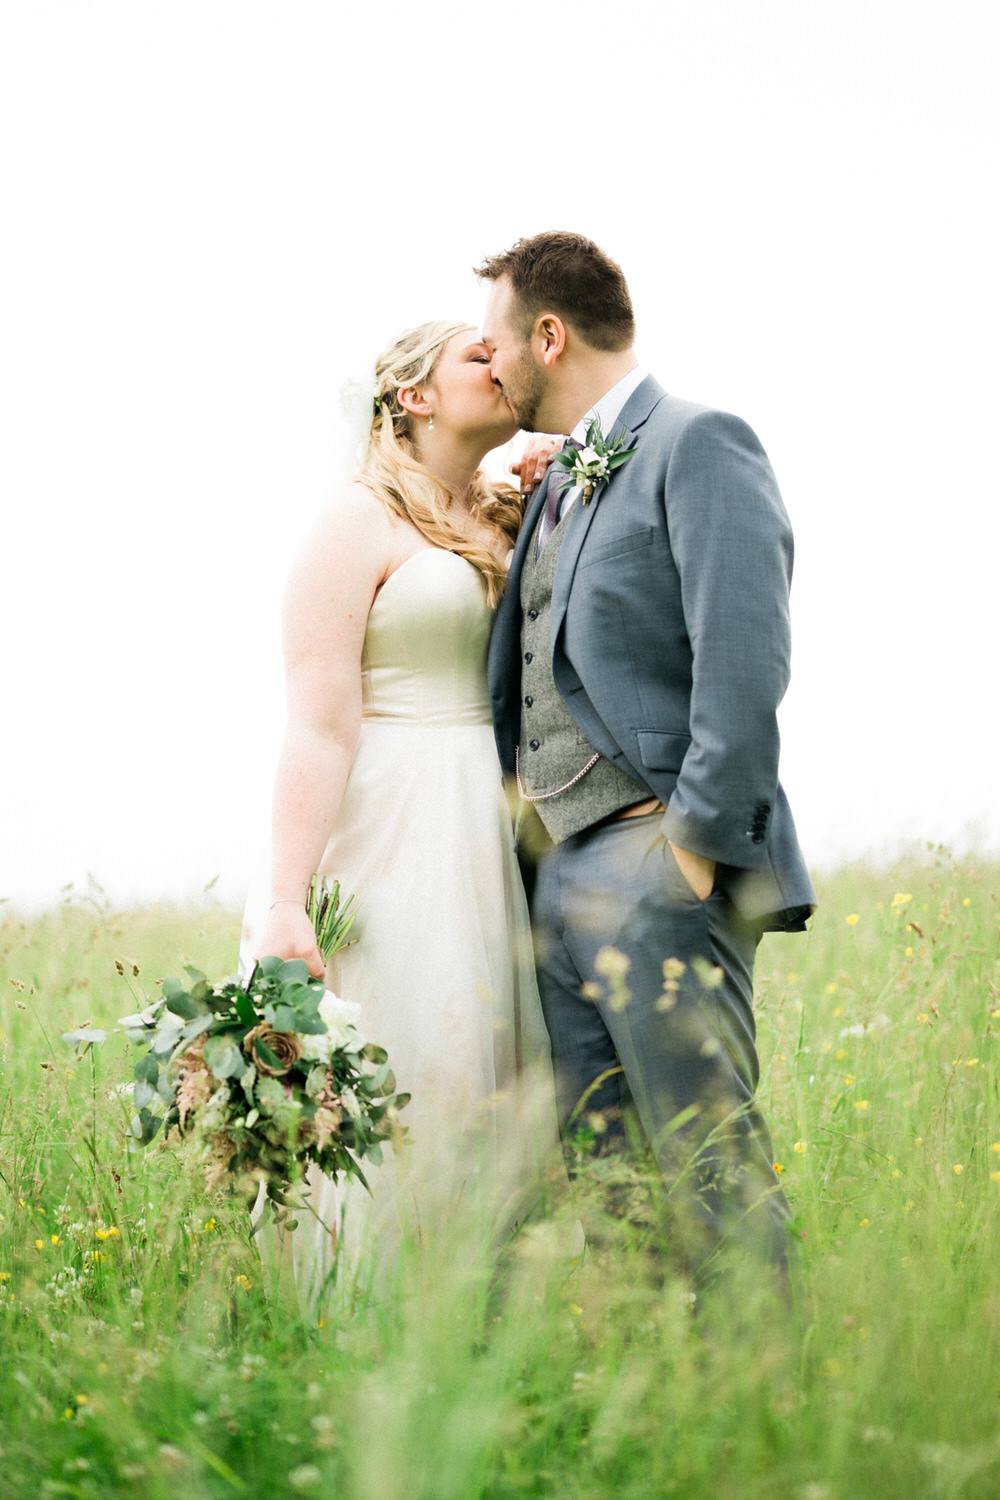 Special-Day-Photography-Cripps-Barn-Cirencester-A-bride-and-groom-kiss-during-a-wedding-couples-photoshoot-Summer-wedding-in-Cotswolds.jpg